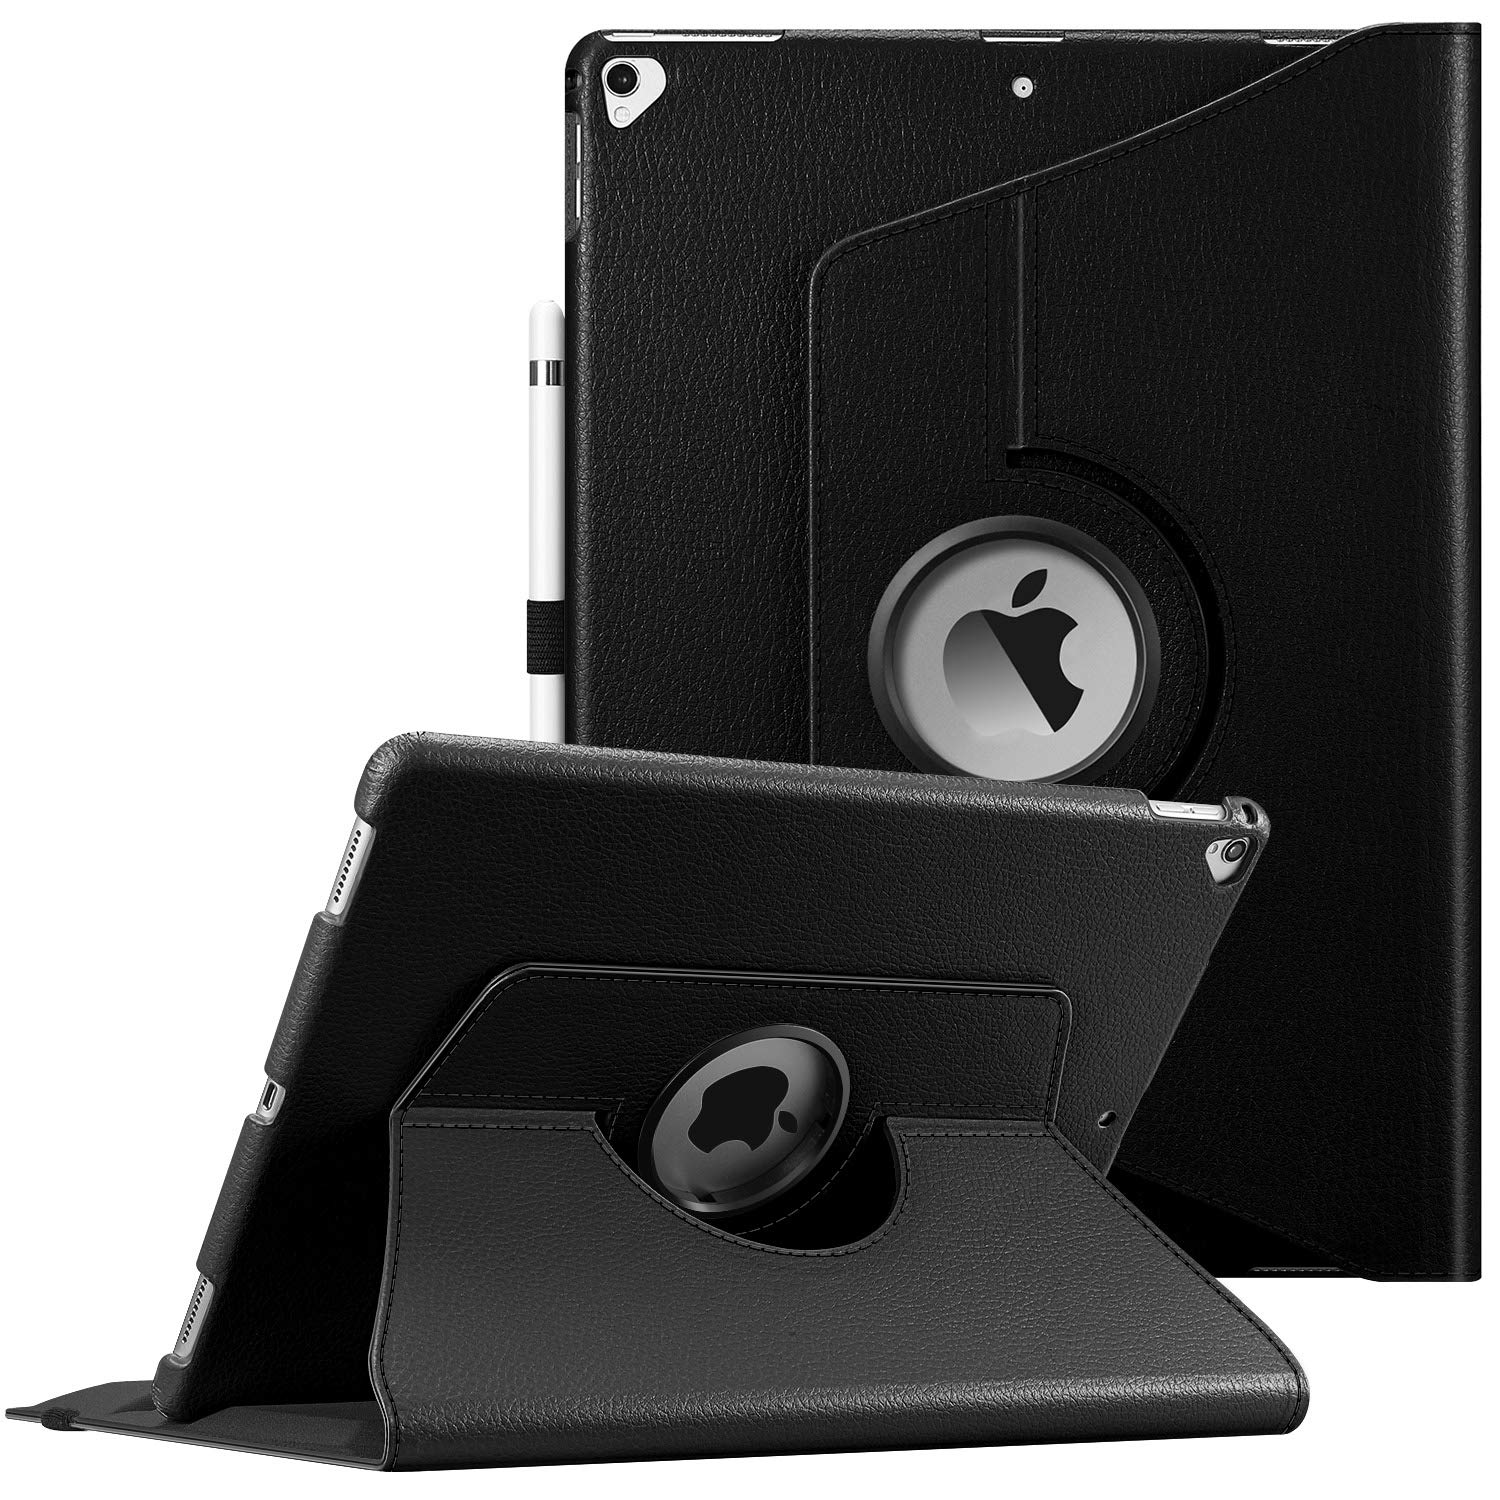 Fintie Rotating Case for iPad Pro 12.9 (2nd Gen) 2017 / iPad Pro 12.9 (1st Gen) 2015-360 Degree Rotating Stand Case with Smart Protective Cover Auto Sleep/Wake, Black